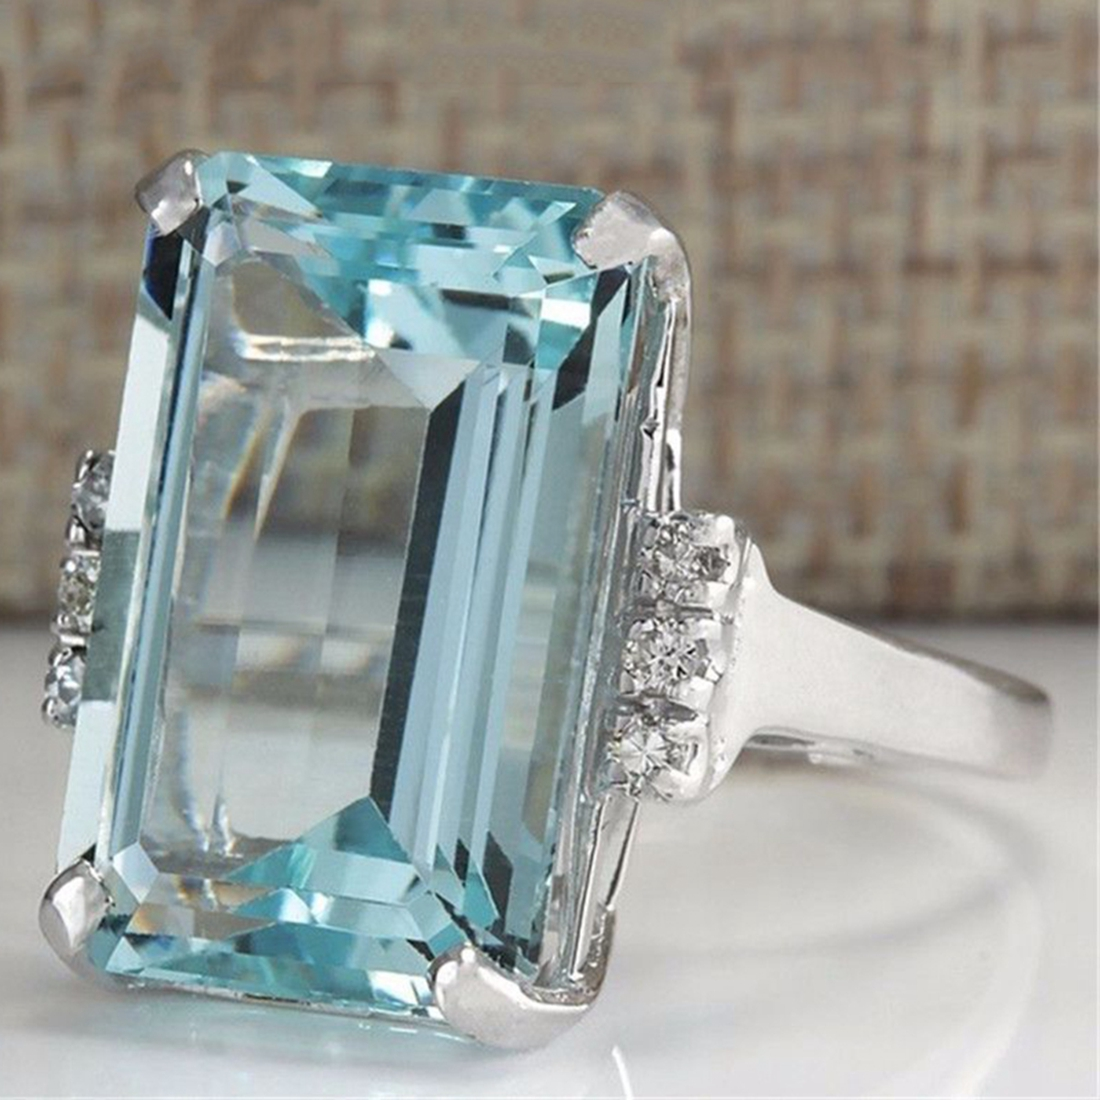 Big Blue CZ Cubic Zircon Stone Silver Rings for Women Fashion Jewelry Valentines Day Gif ...